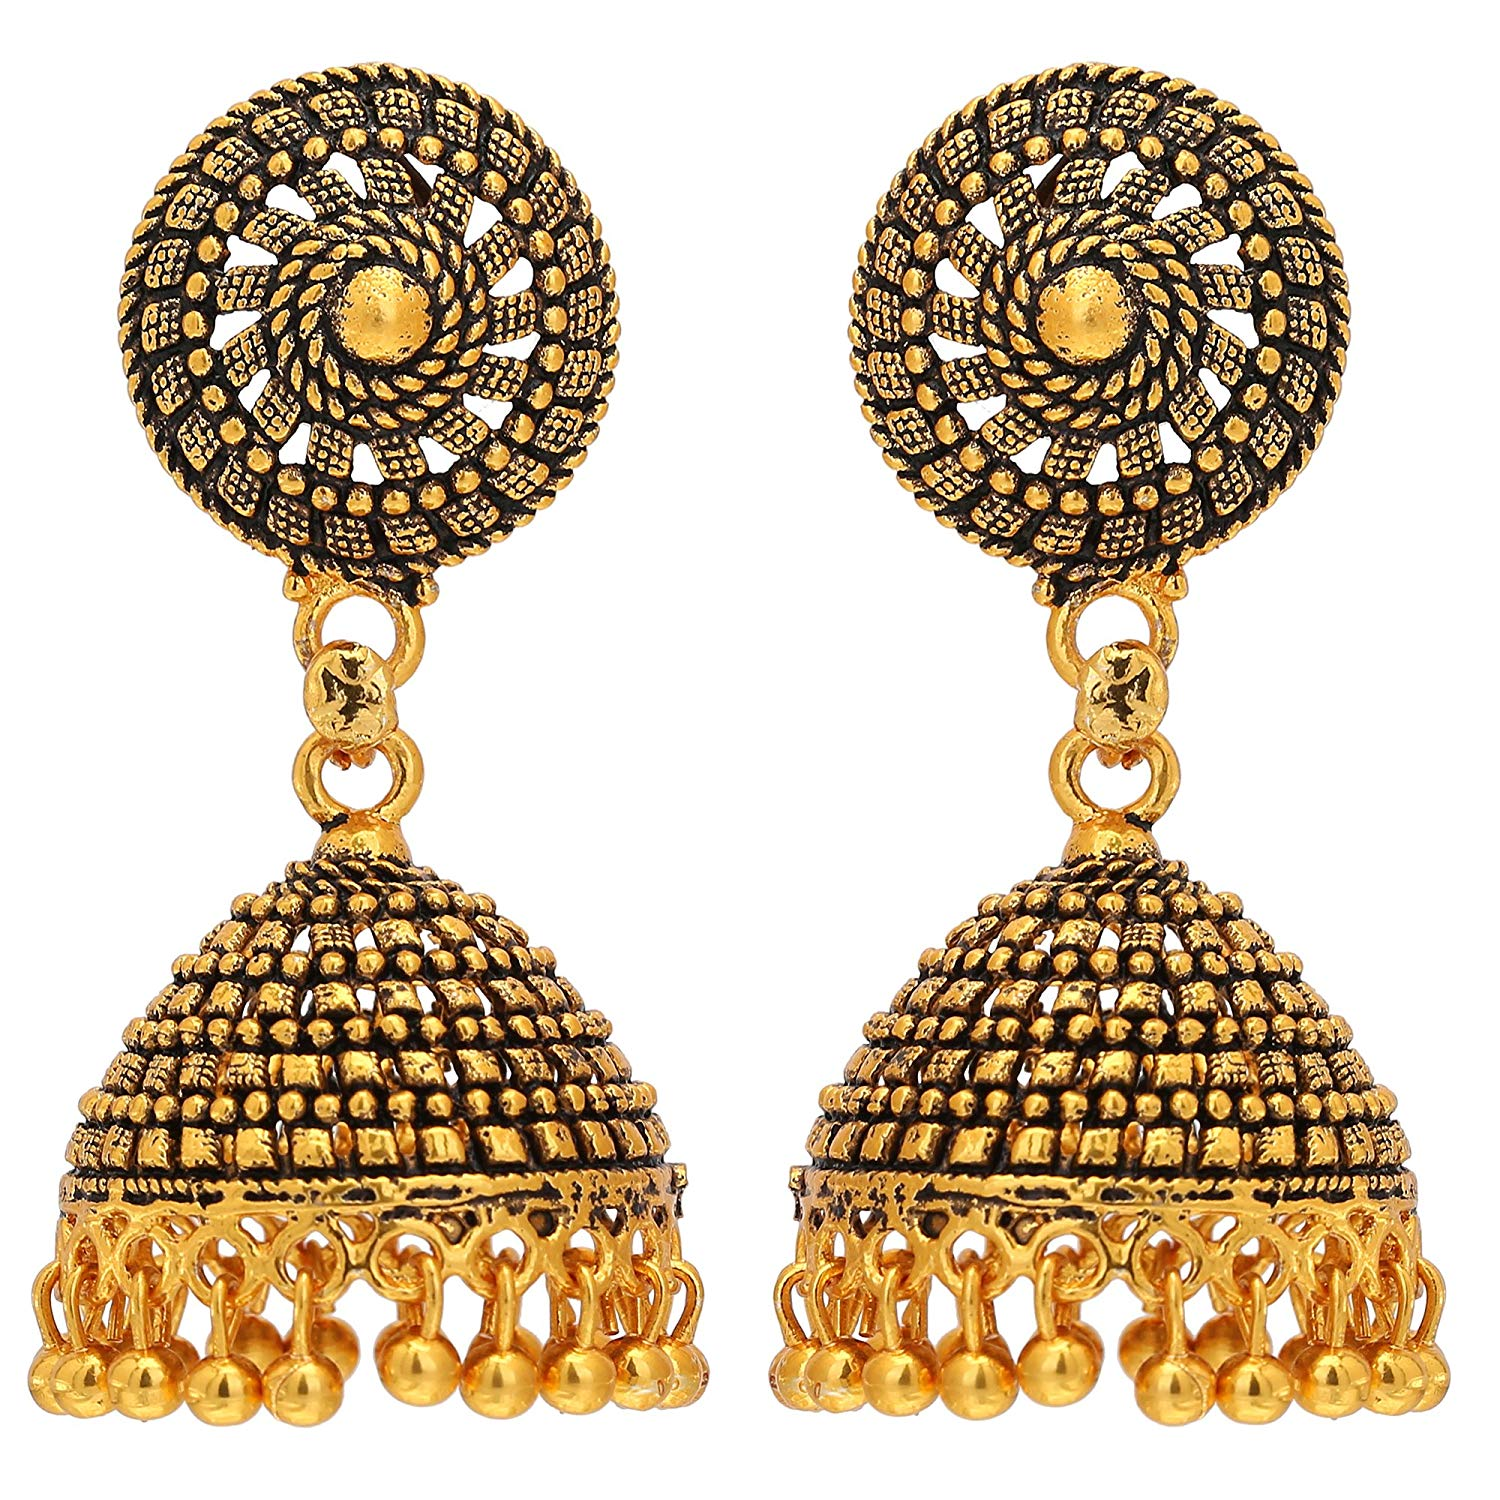 Cheap Gold Jhumka Earrings With Rectangle Shape, find Gold